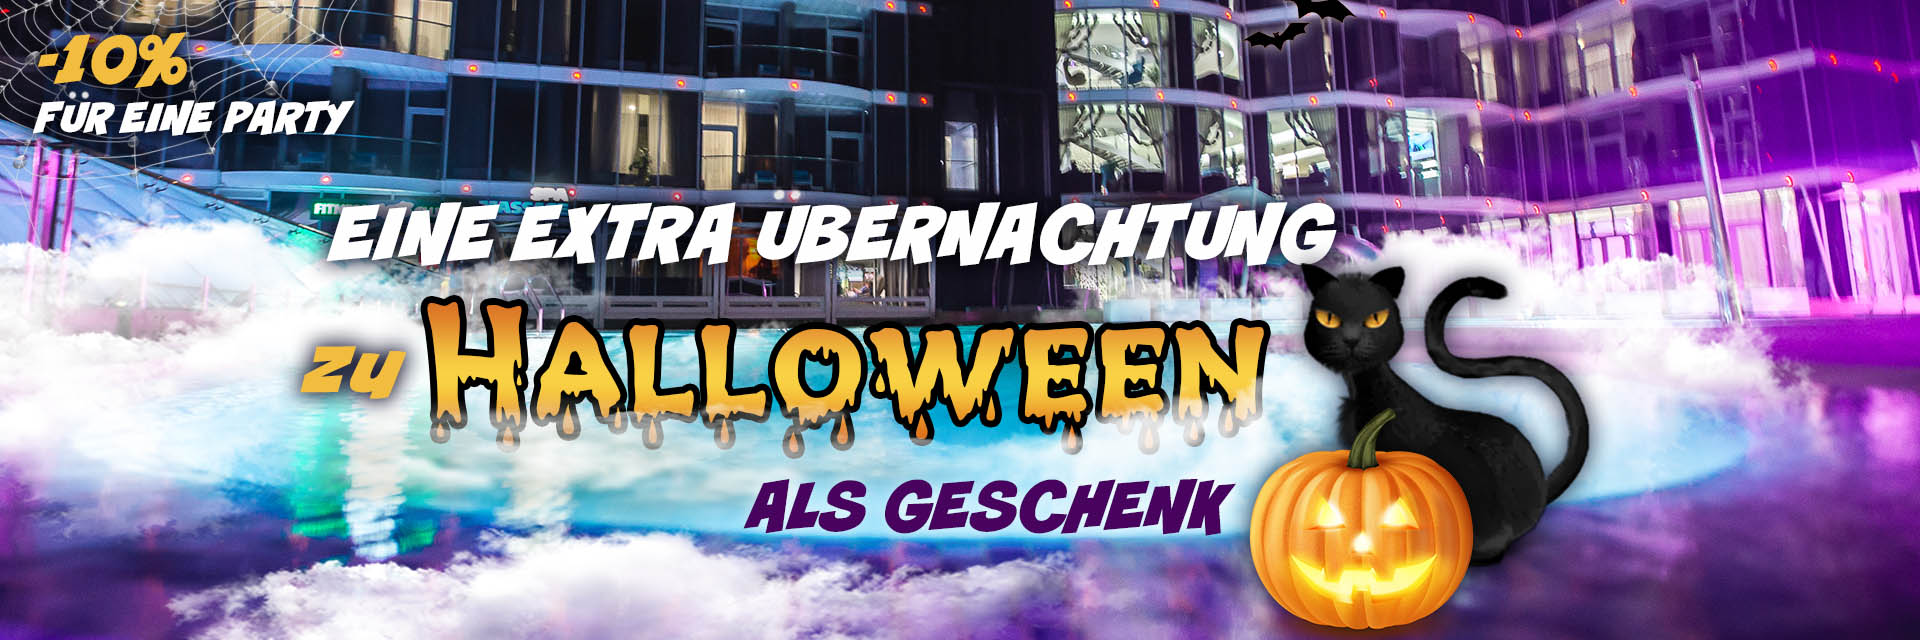 Halloween im NEMO im RESORT & SPA HOTEL NEMO, foto № 1